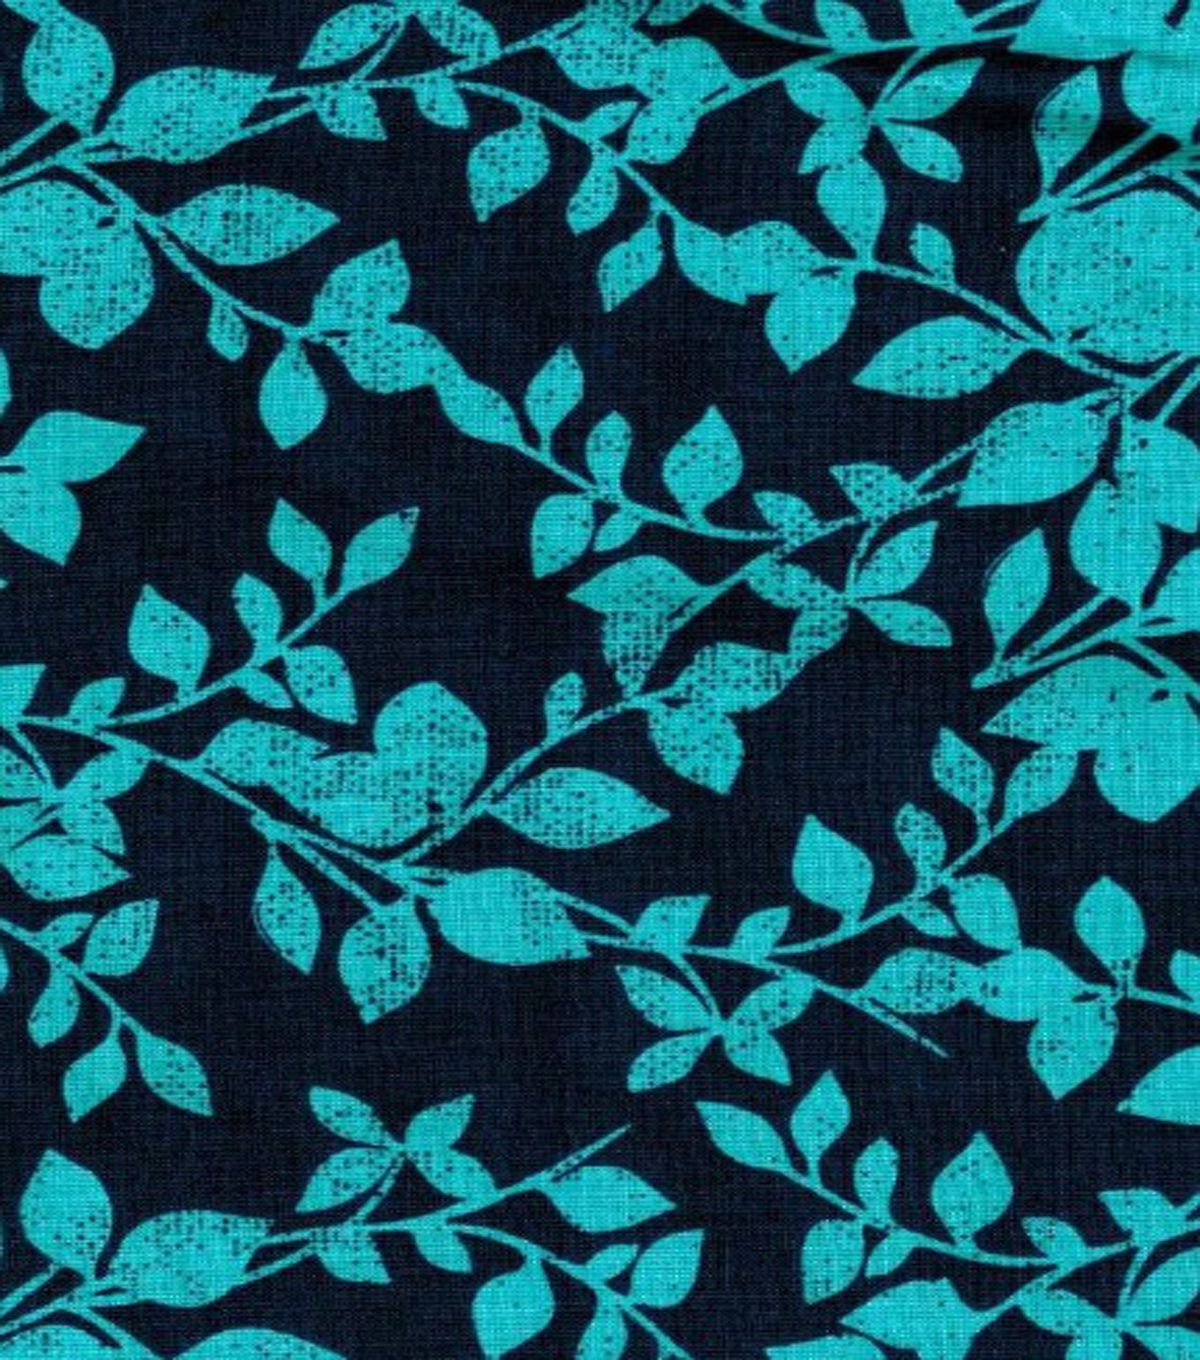 Keepsake Calico Cotton Fabric- Navy Vine | Products | Pinterest